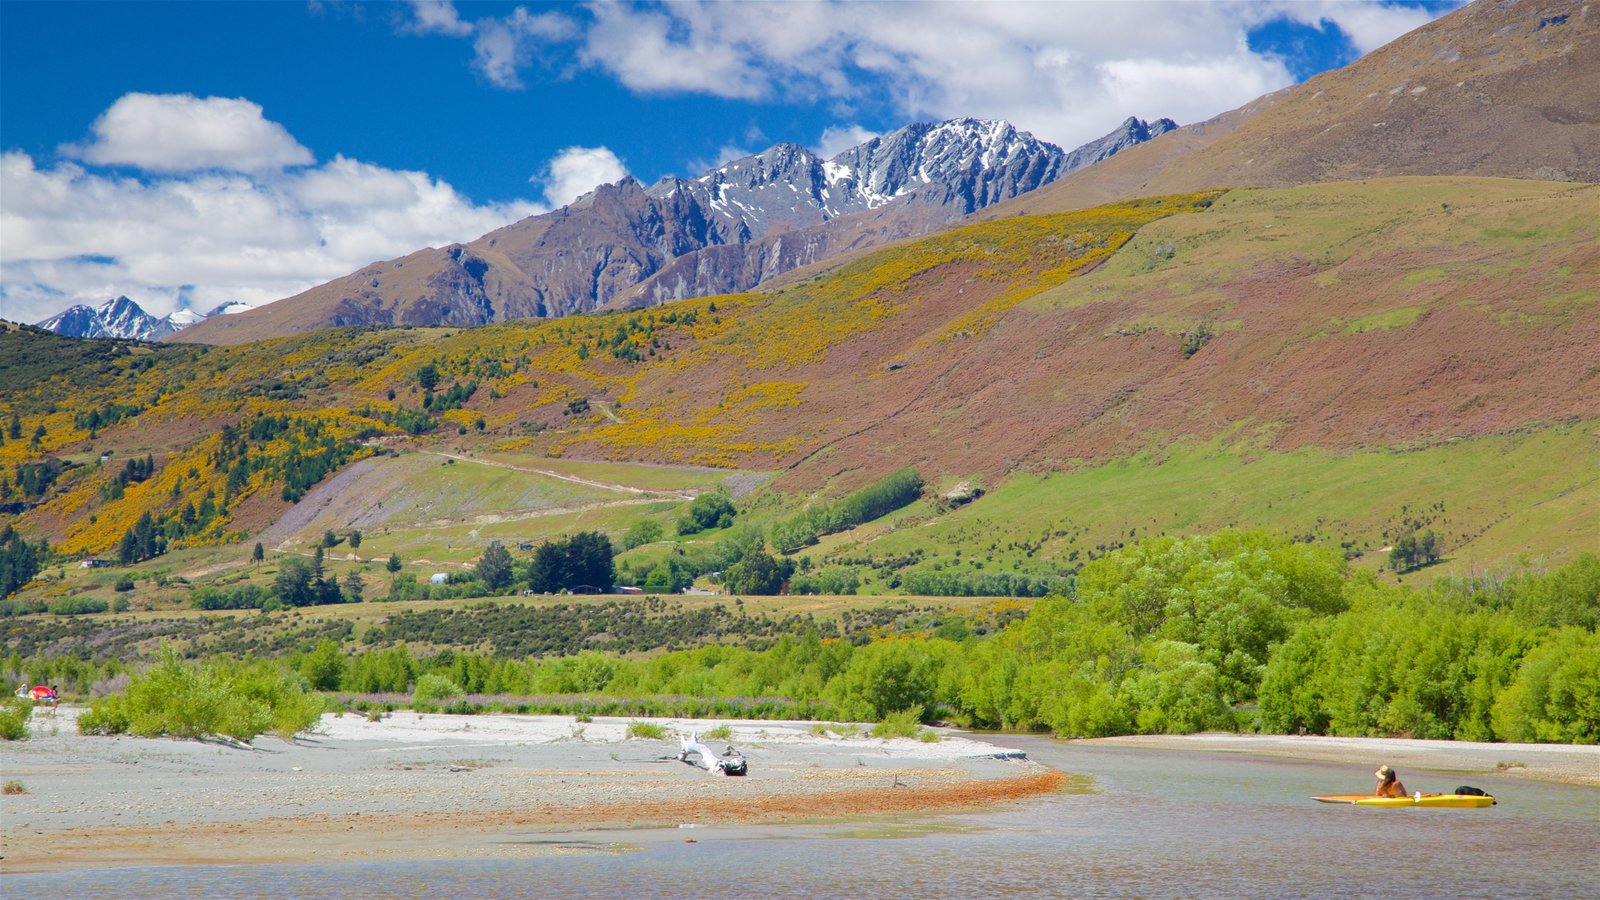 Glenorchy showing a pebble beach, kayaking or canoeing and mountains